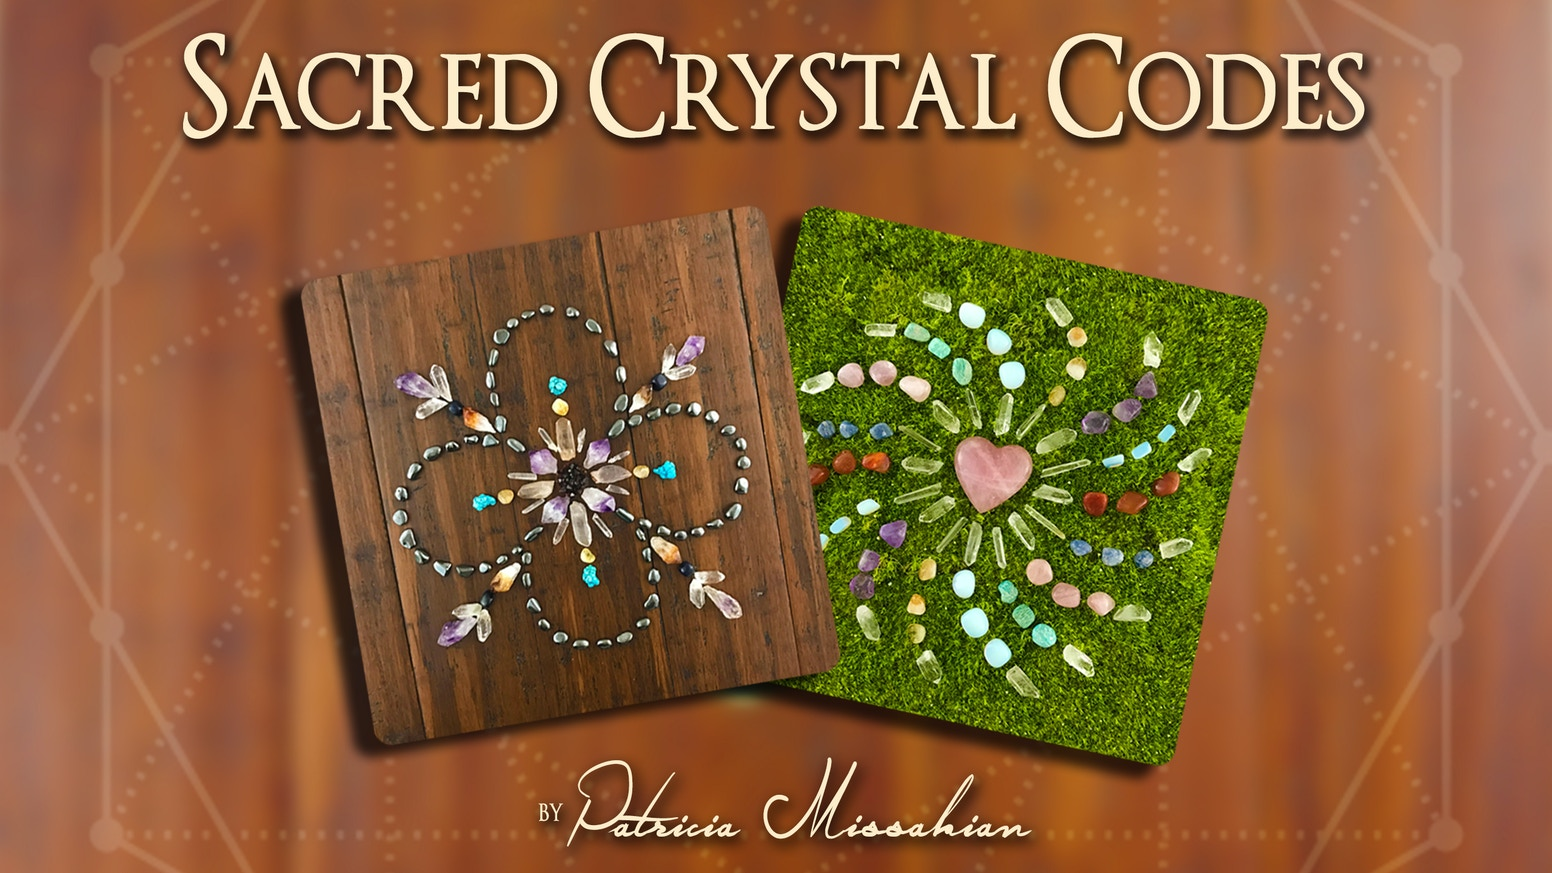 Sacred Crystal Codes by Patricia Missakian » Join me for